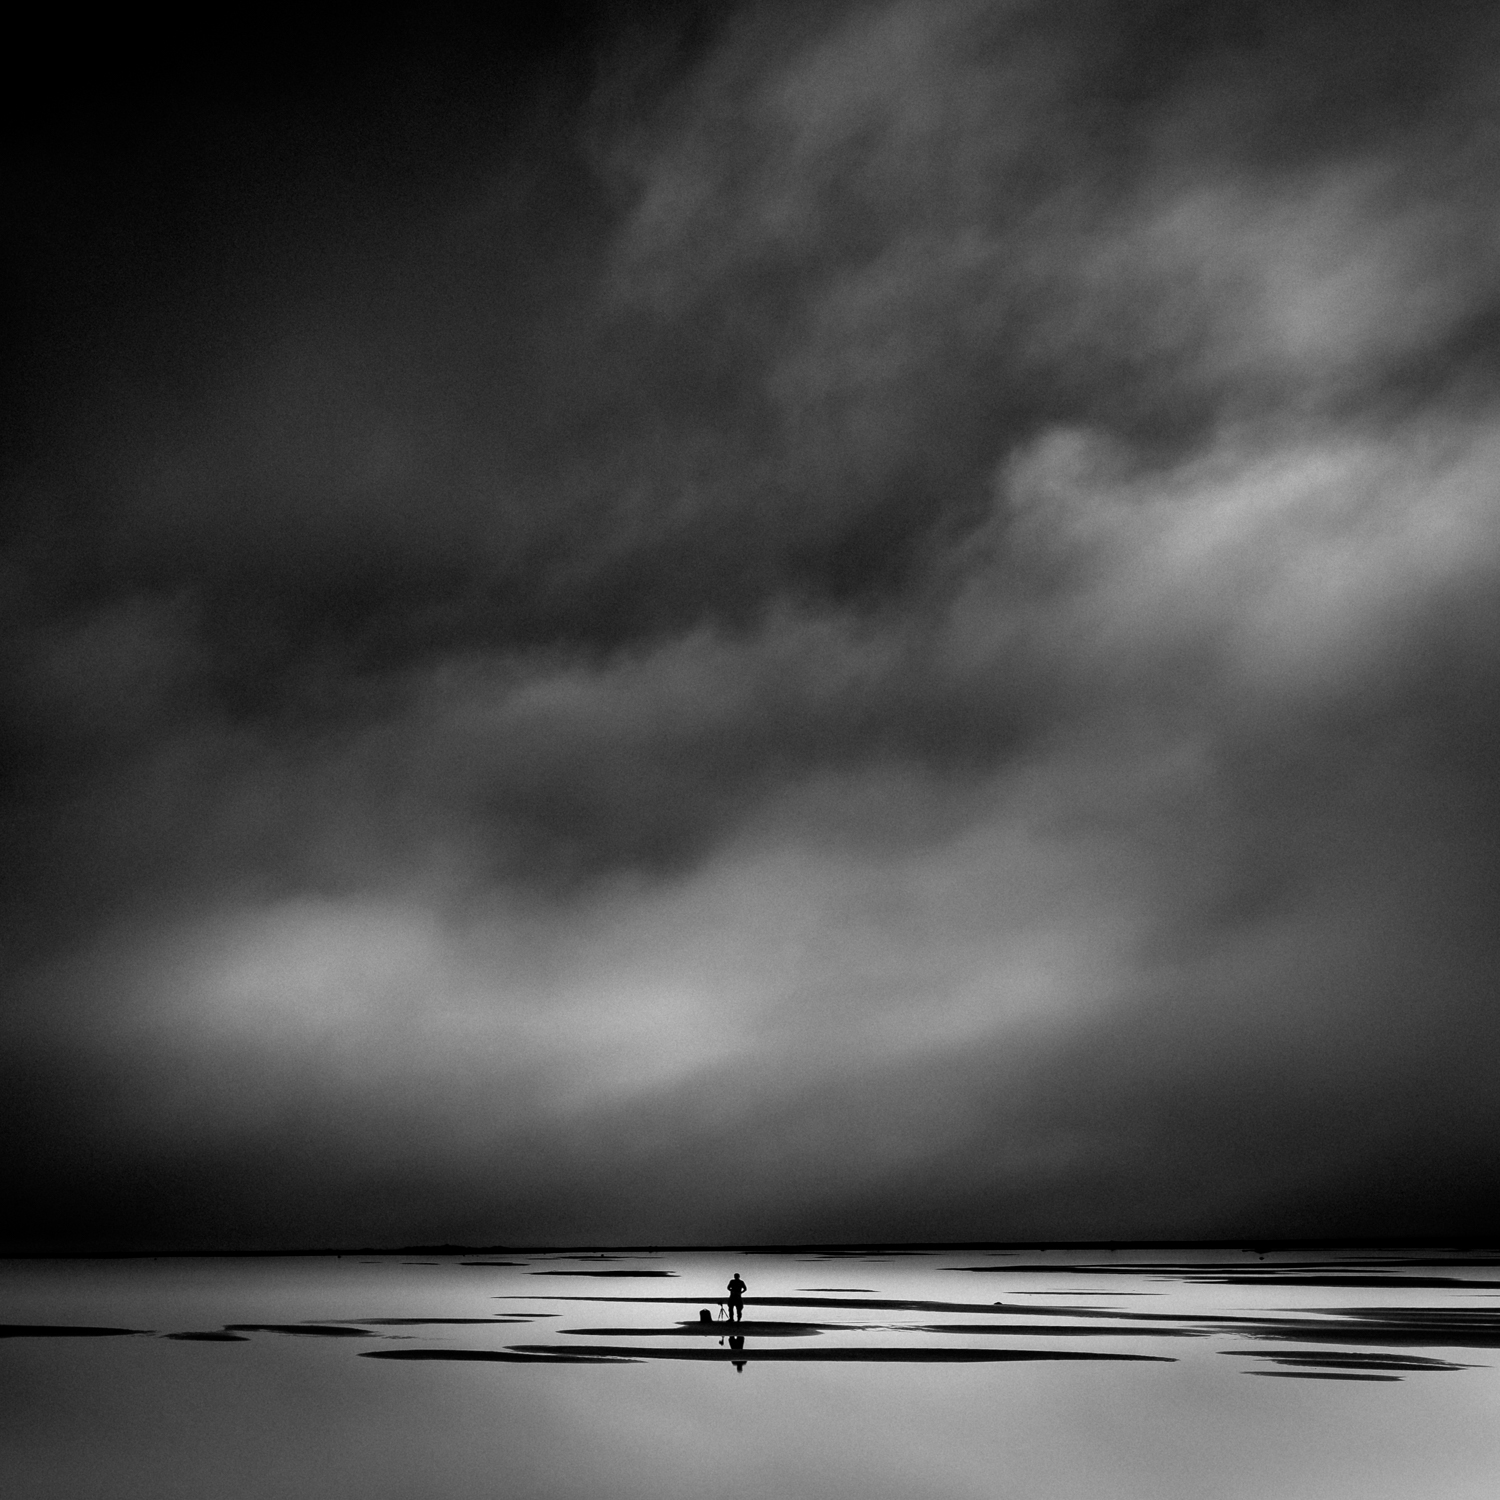 Alone, fine art photography